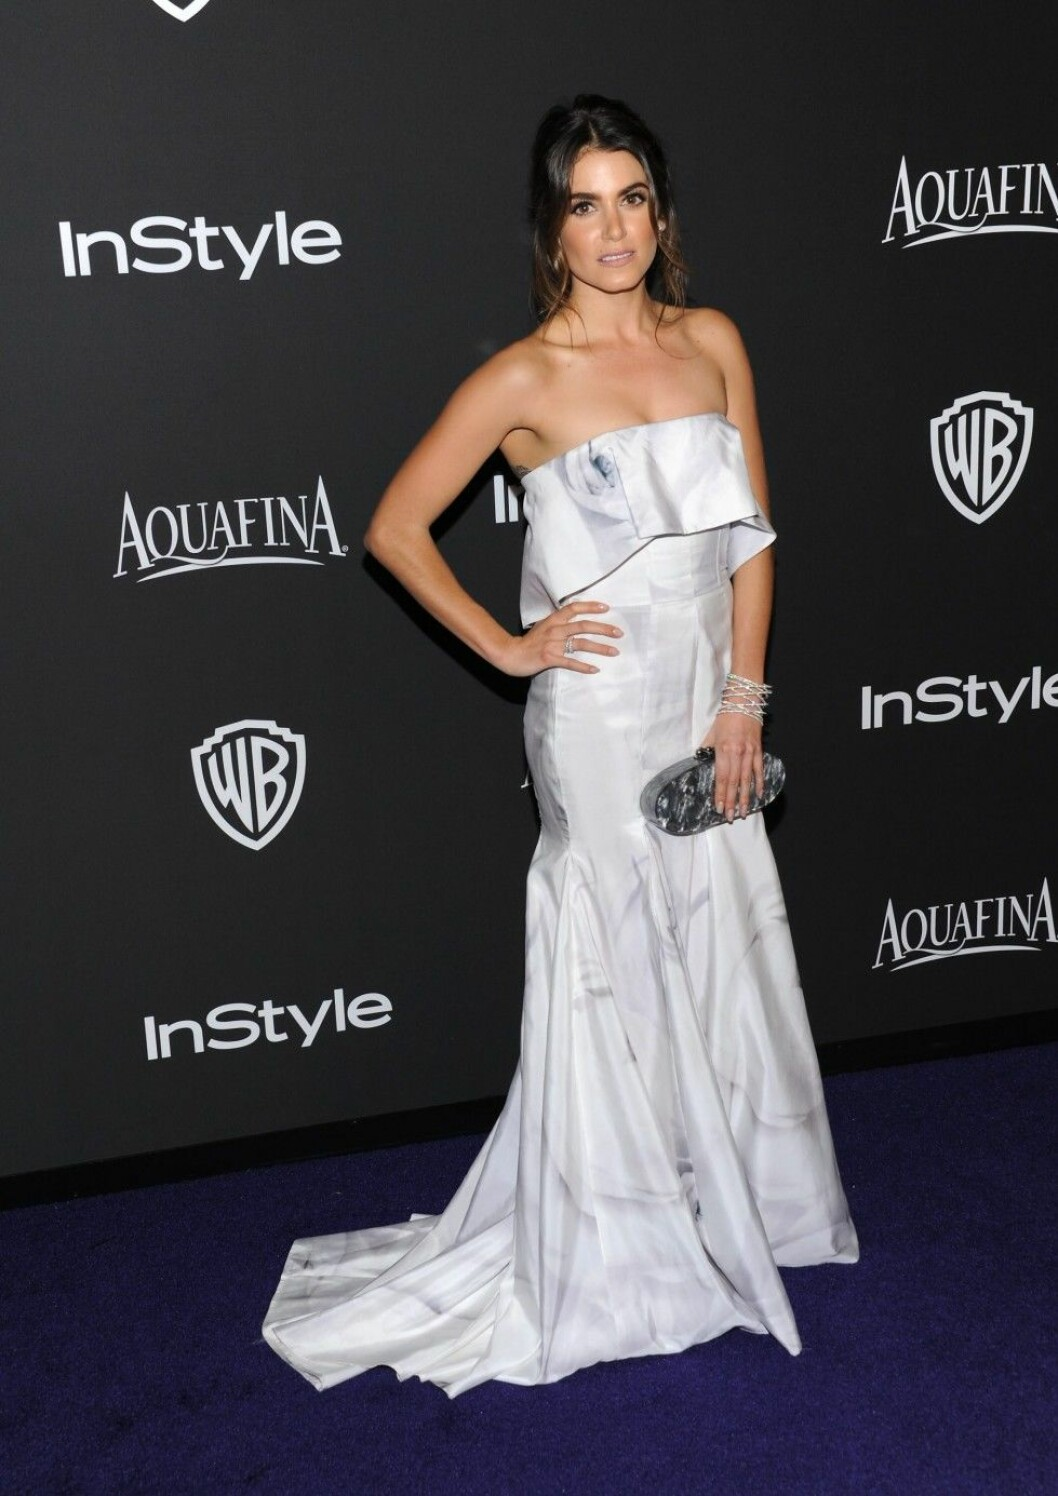 72nd Annual Golden Globe Awards - InStyle/Warner Bros Party - Los Angeles